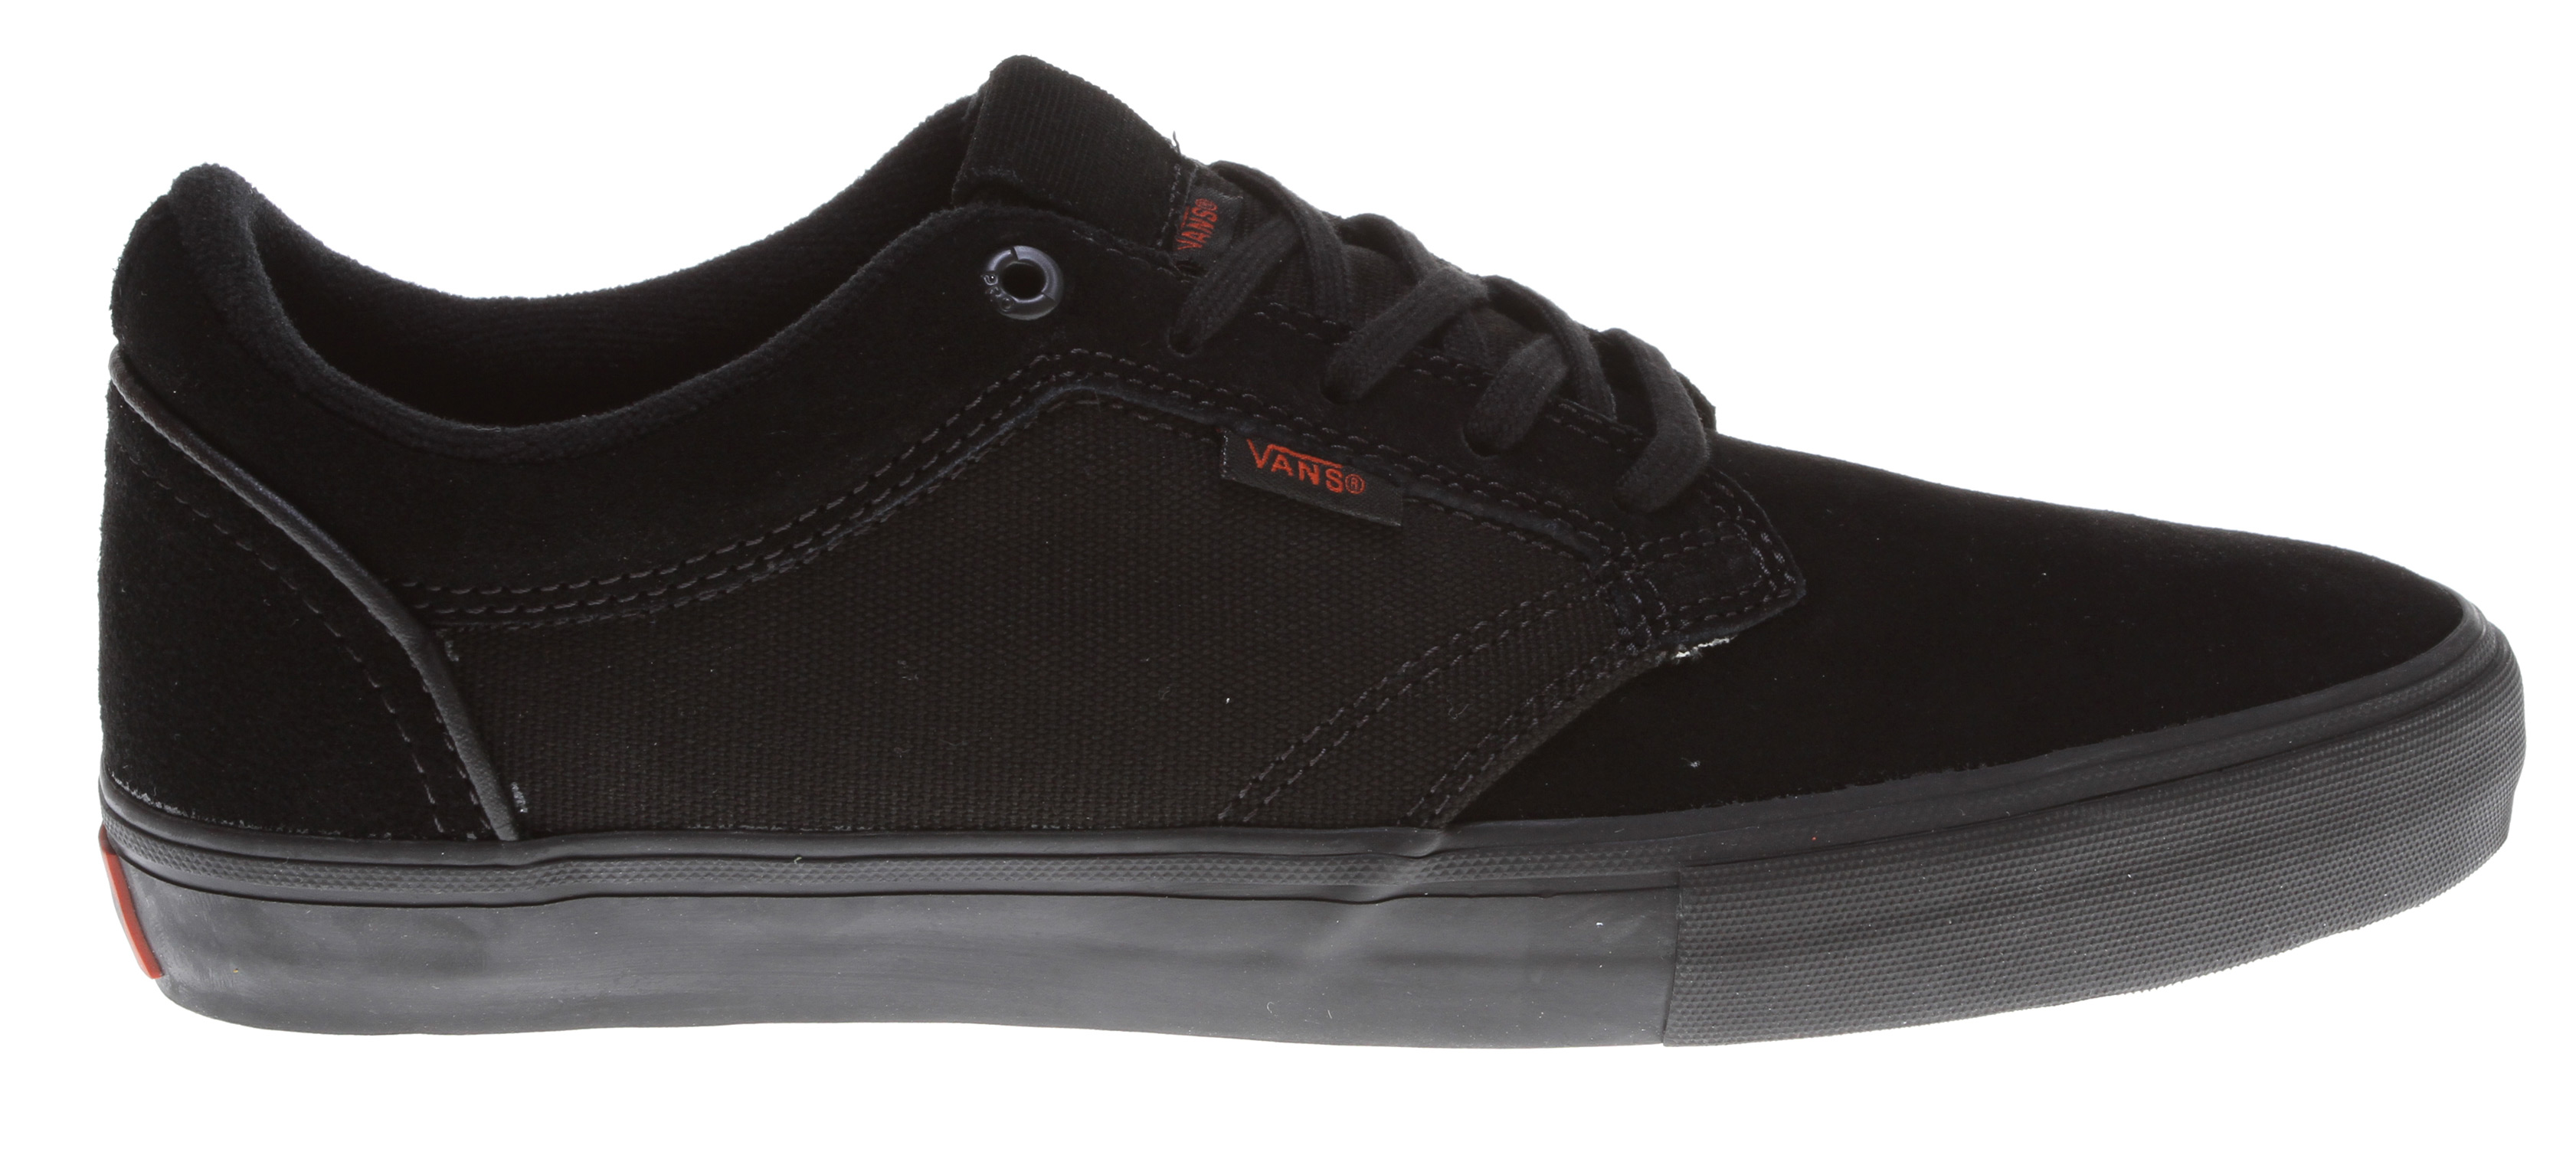 Skateboard Key Features of the Vans Type II Skate Shoes: PRO SKATE Vulc Construction CMEVA Cushioning Vans Original Waffle Gum Rubber Outsole Flex & Fit Upper - $60.00